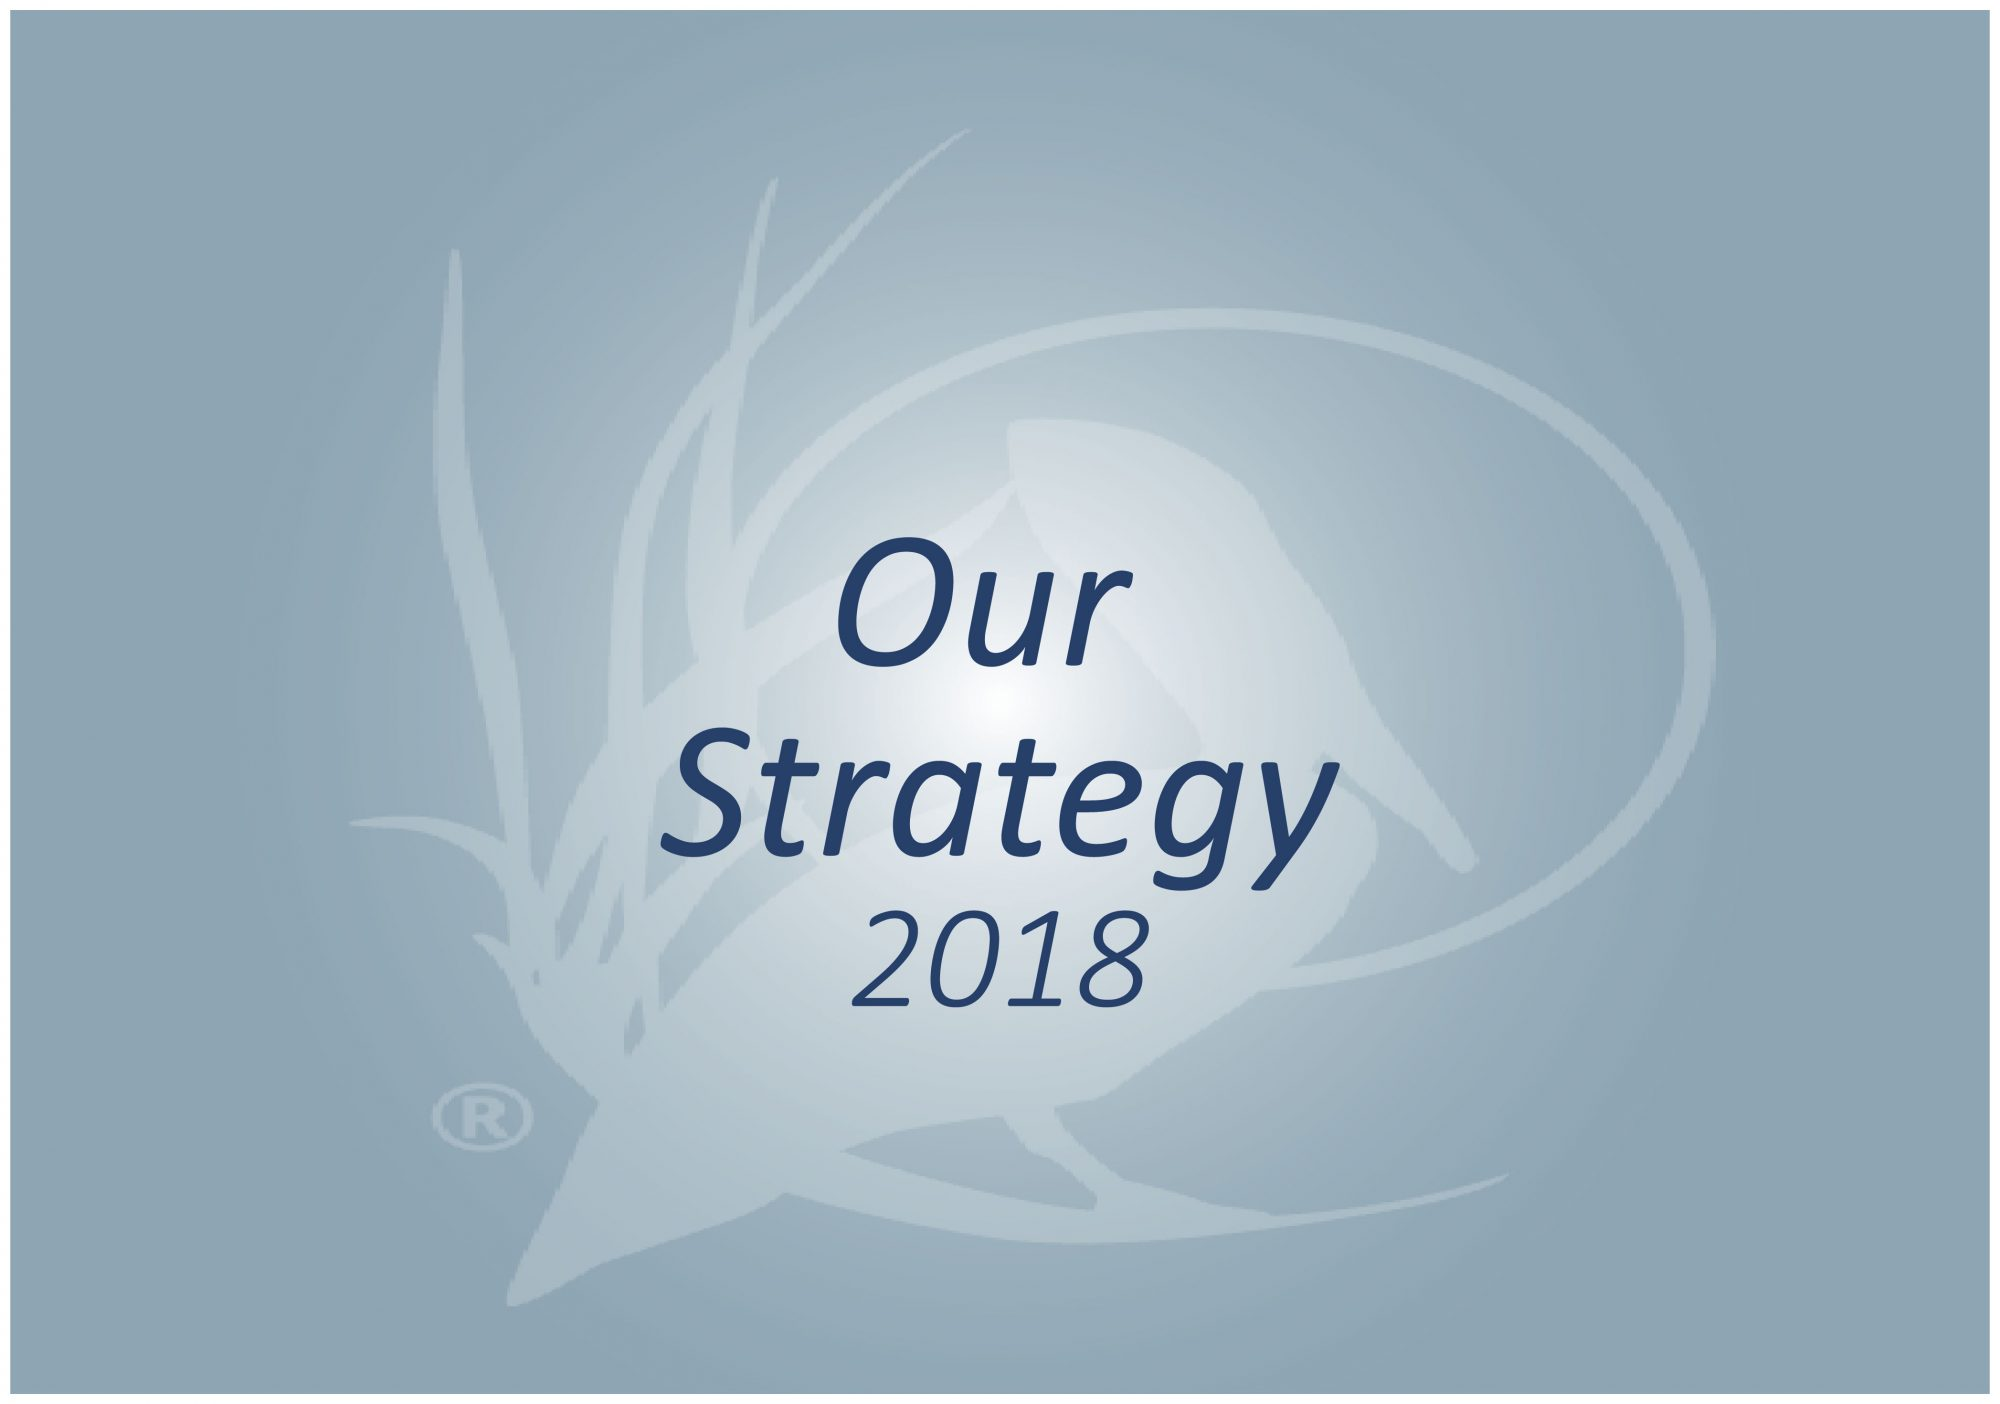 Our Strategy 2018